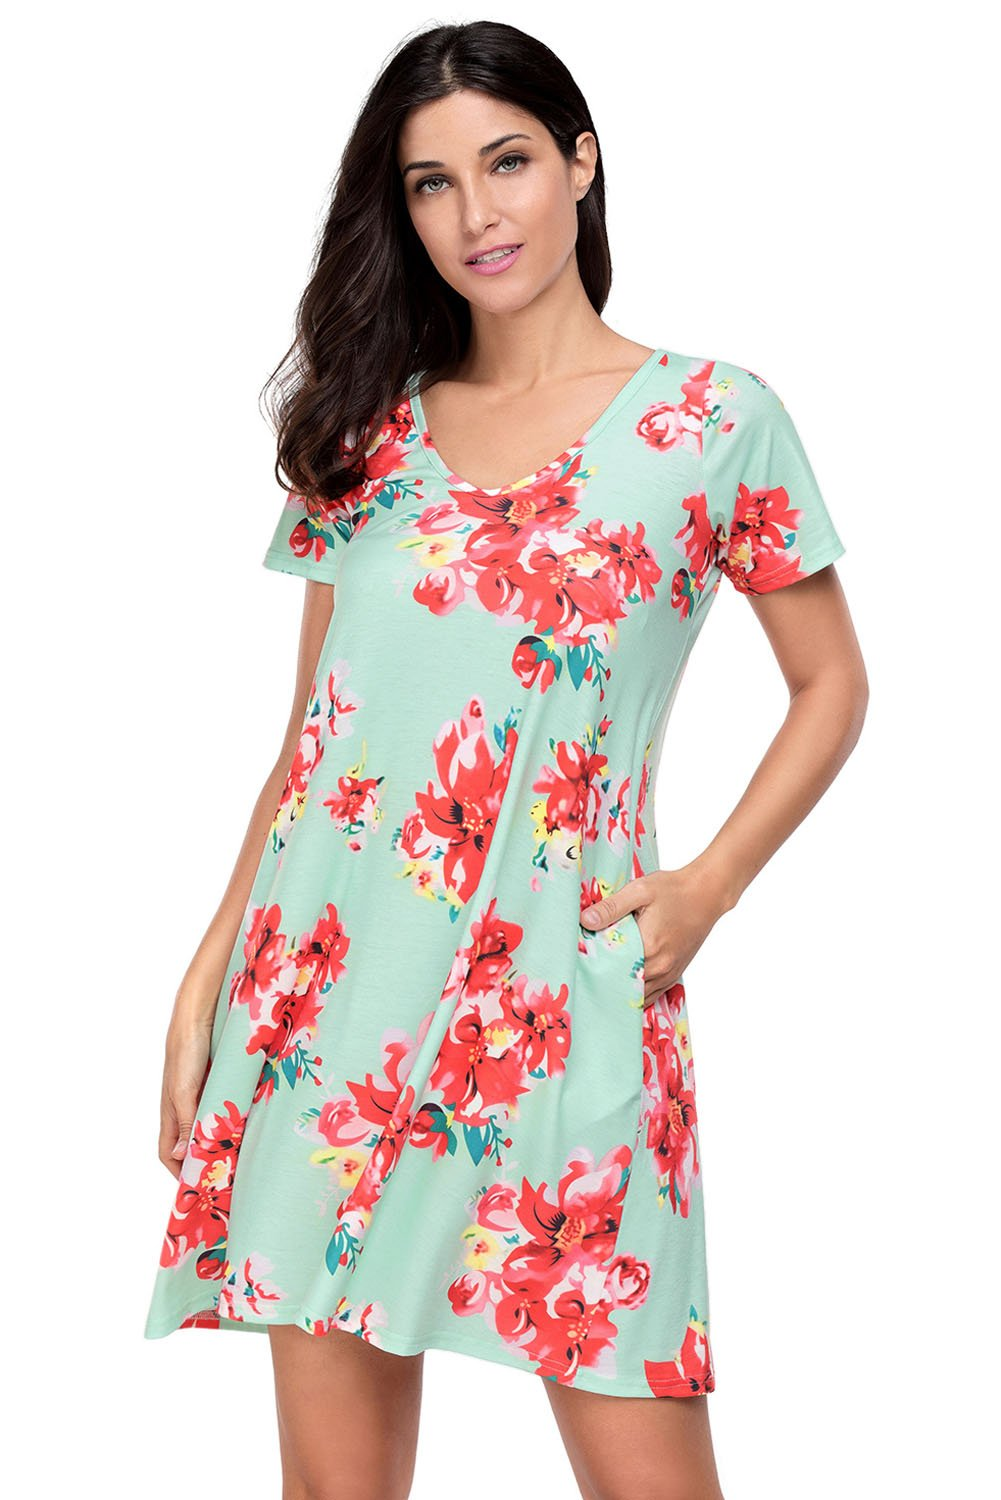 Pocket Design Summer Floral Shirt Dress